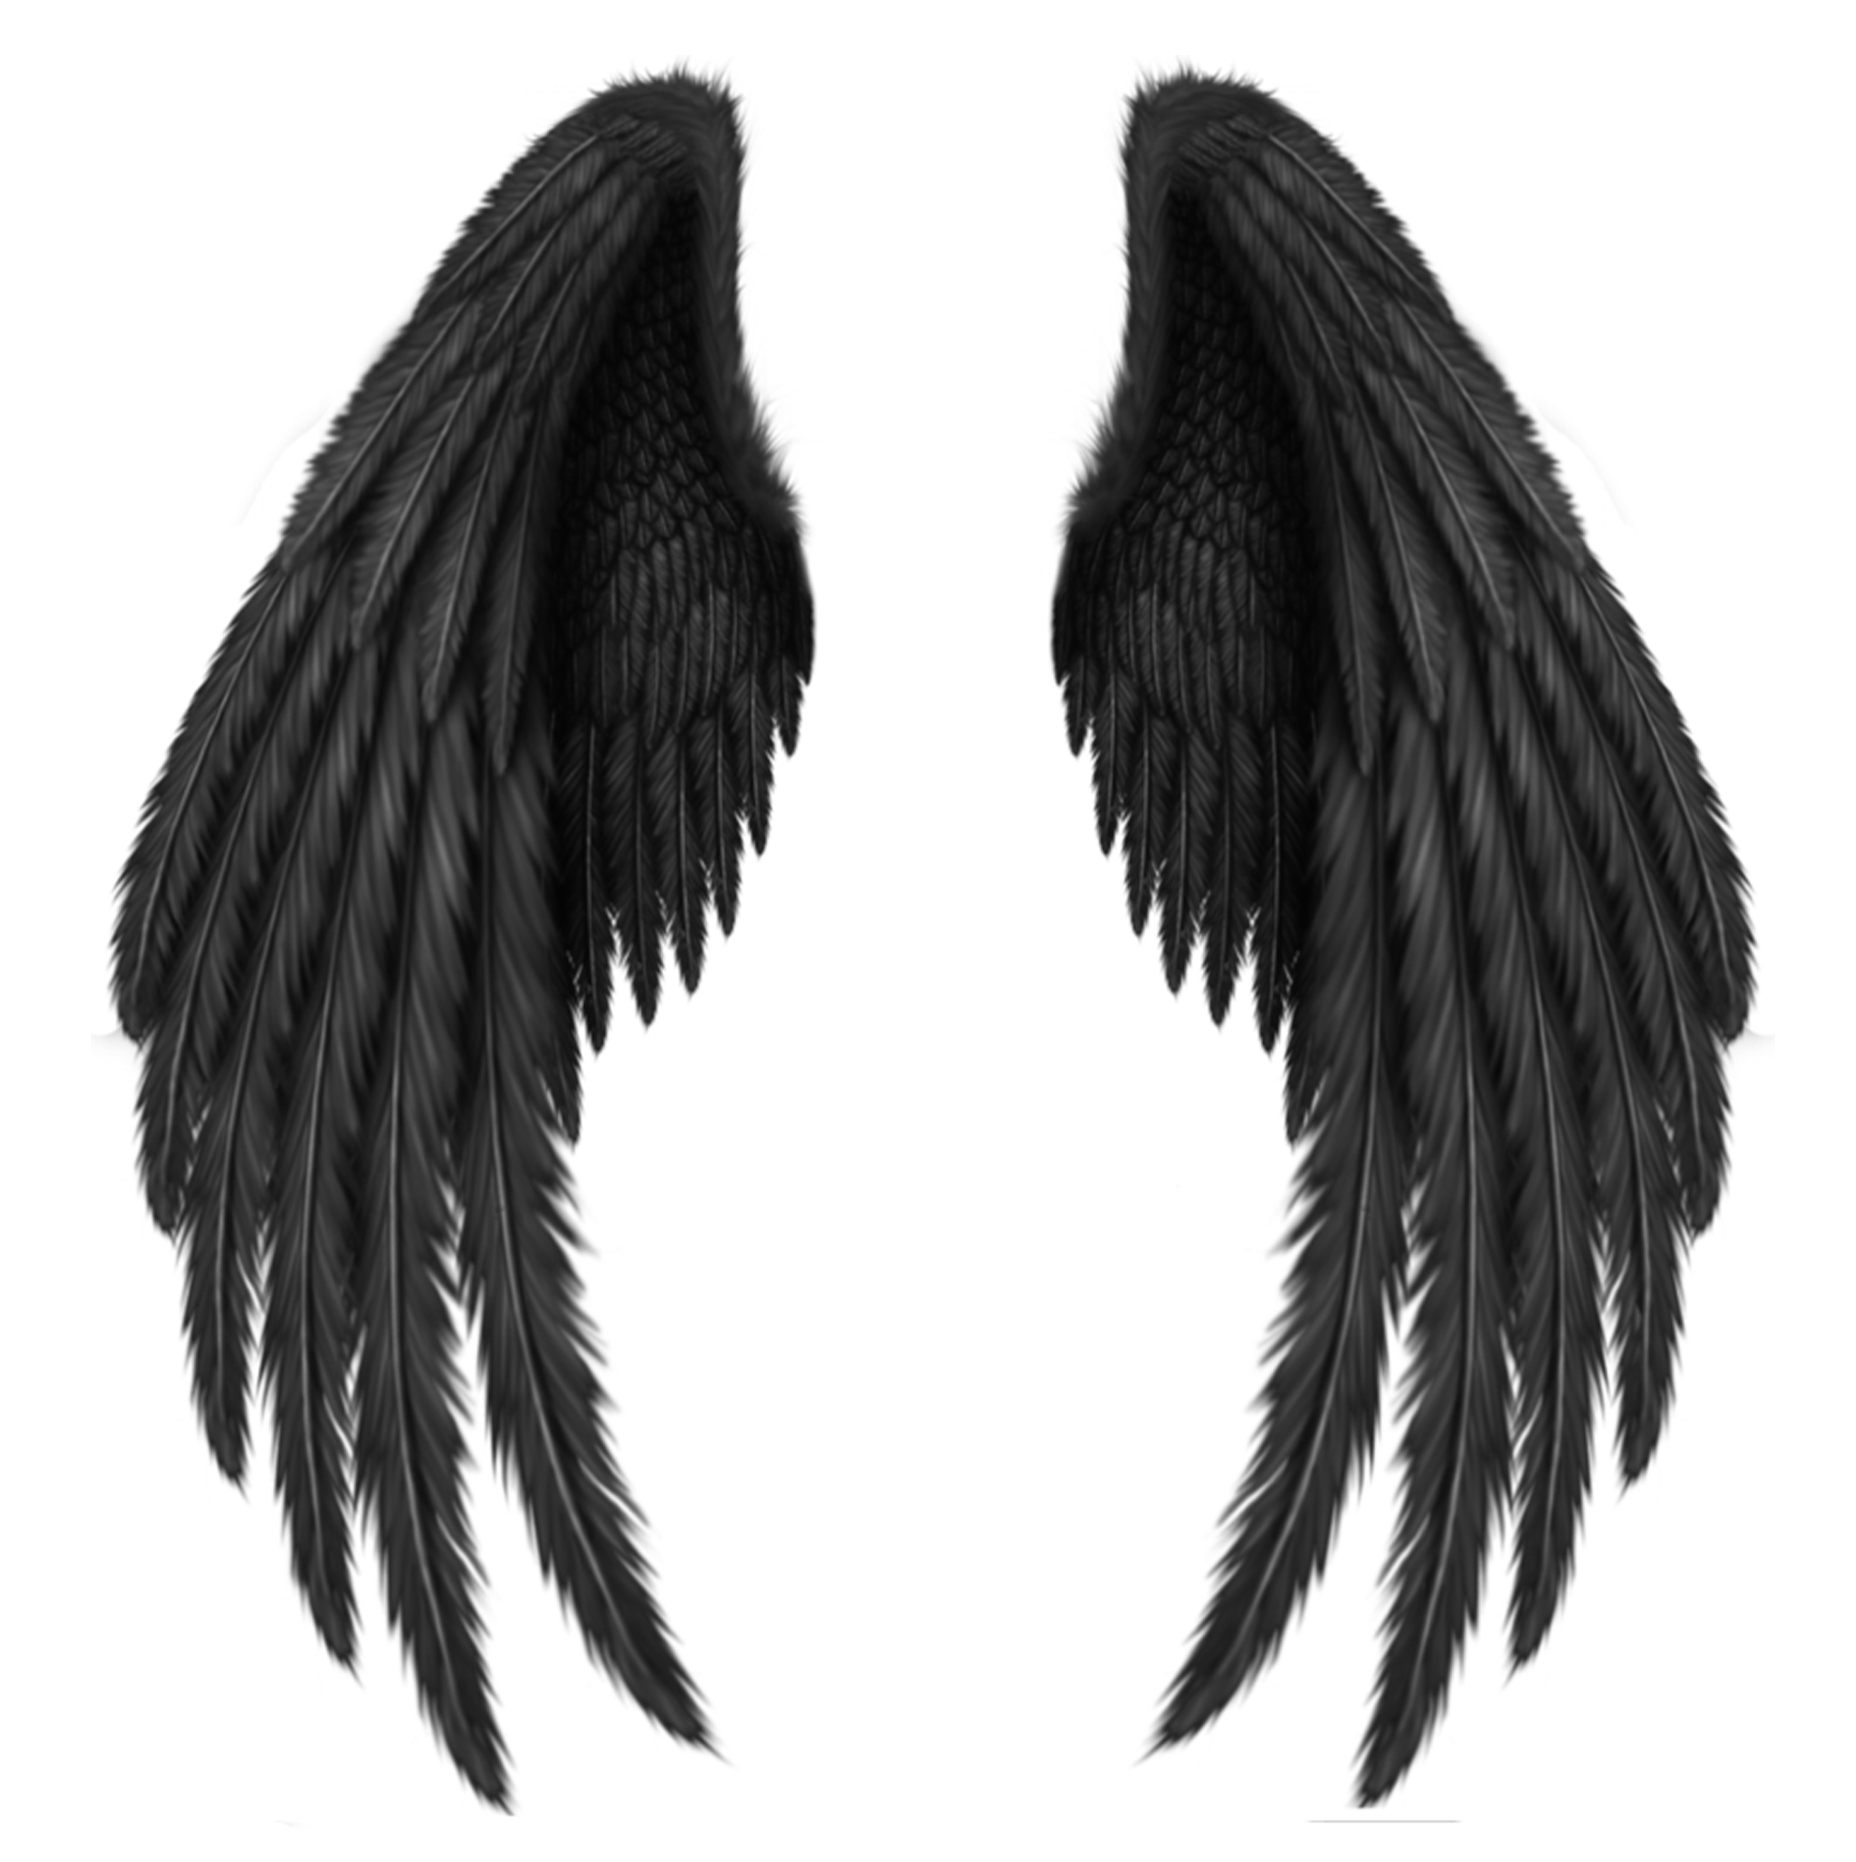 Drawing raven wing. Transparent black wings png